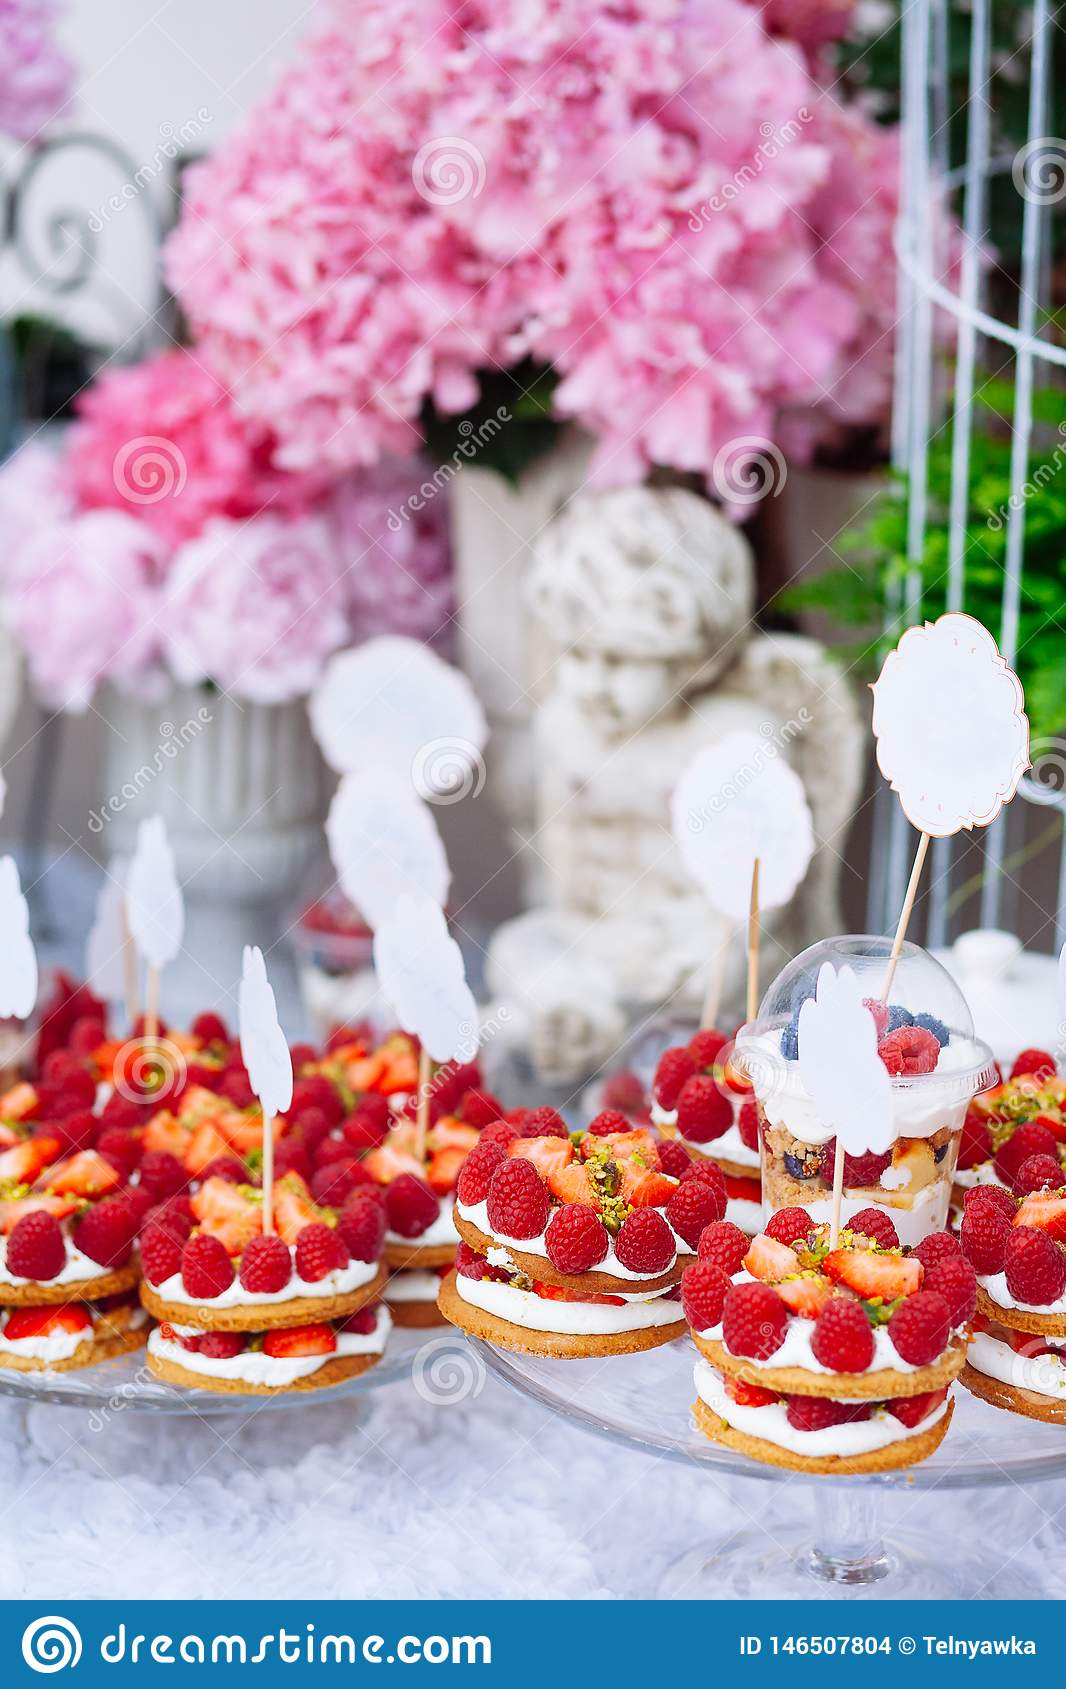 Buffet with sweets. Cakes with raspberries. Sweet table for banquets, weddings, parties